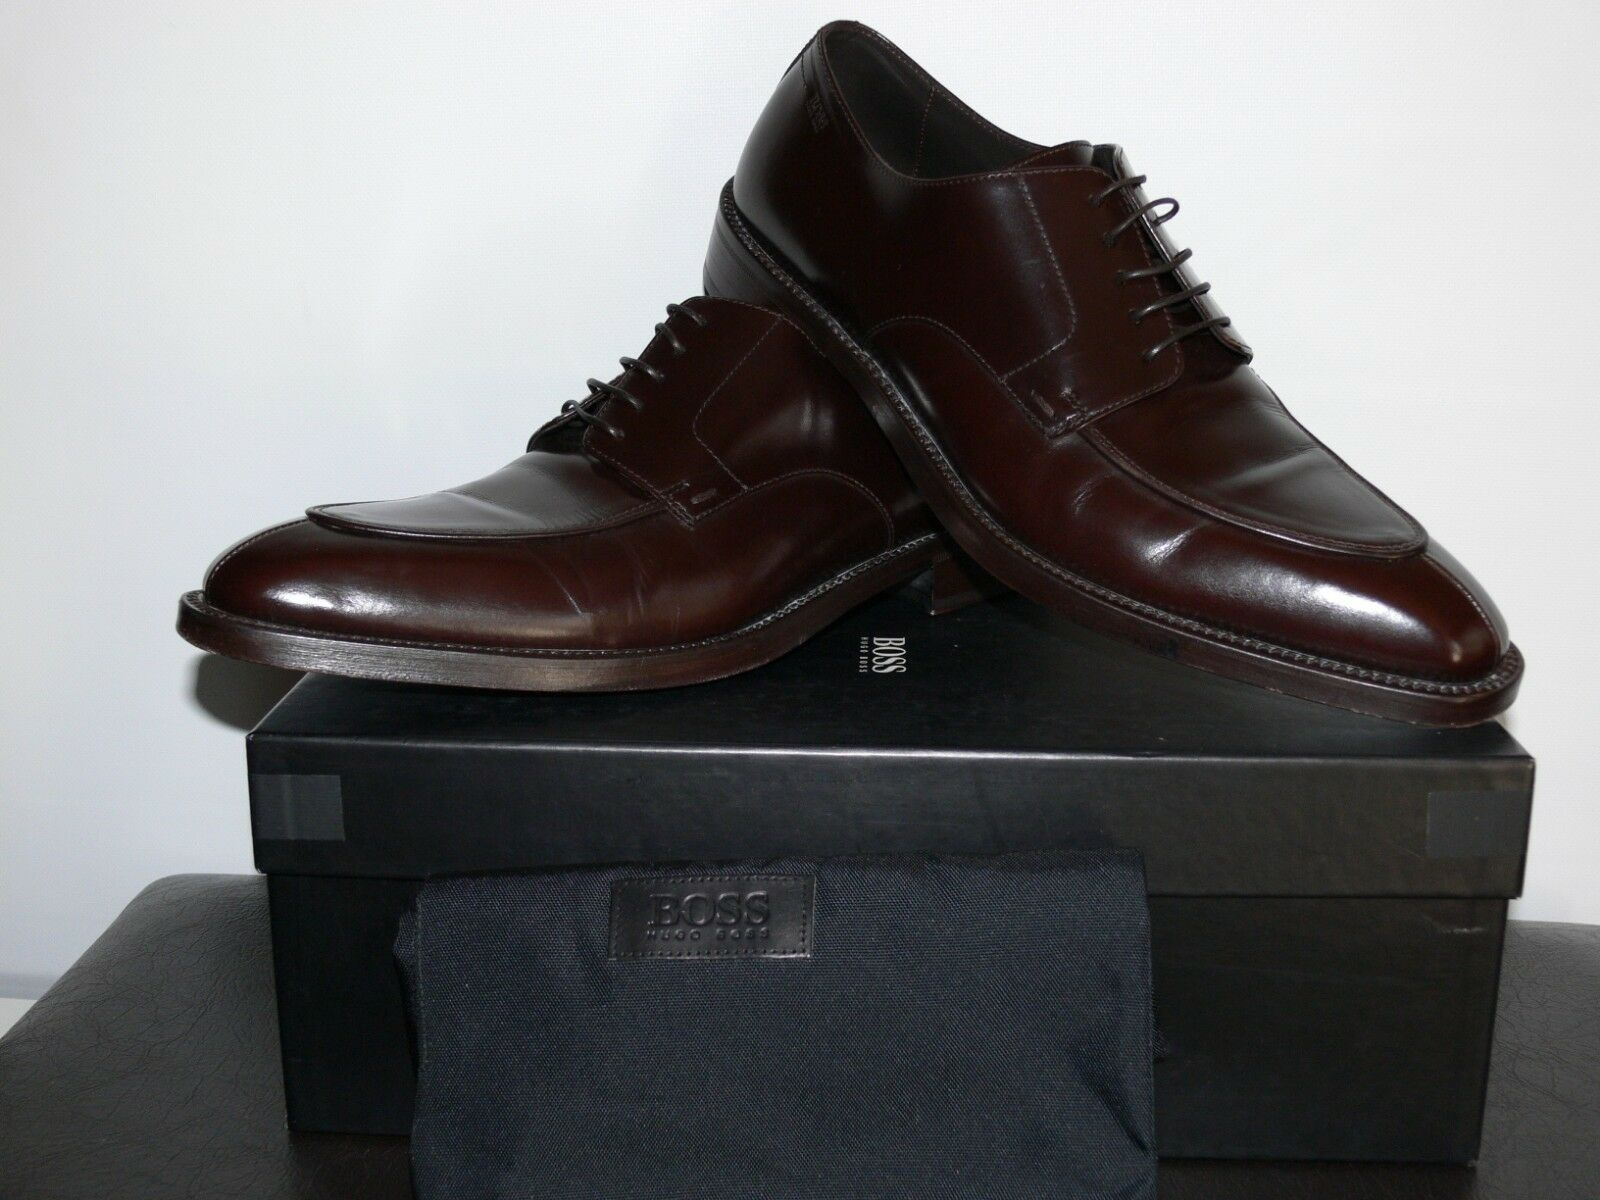 NEW  490.00 HUGO BOSS FORMAL MADE IN ITALY GENUINE LEATHER  SIZE US 10.5